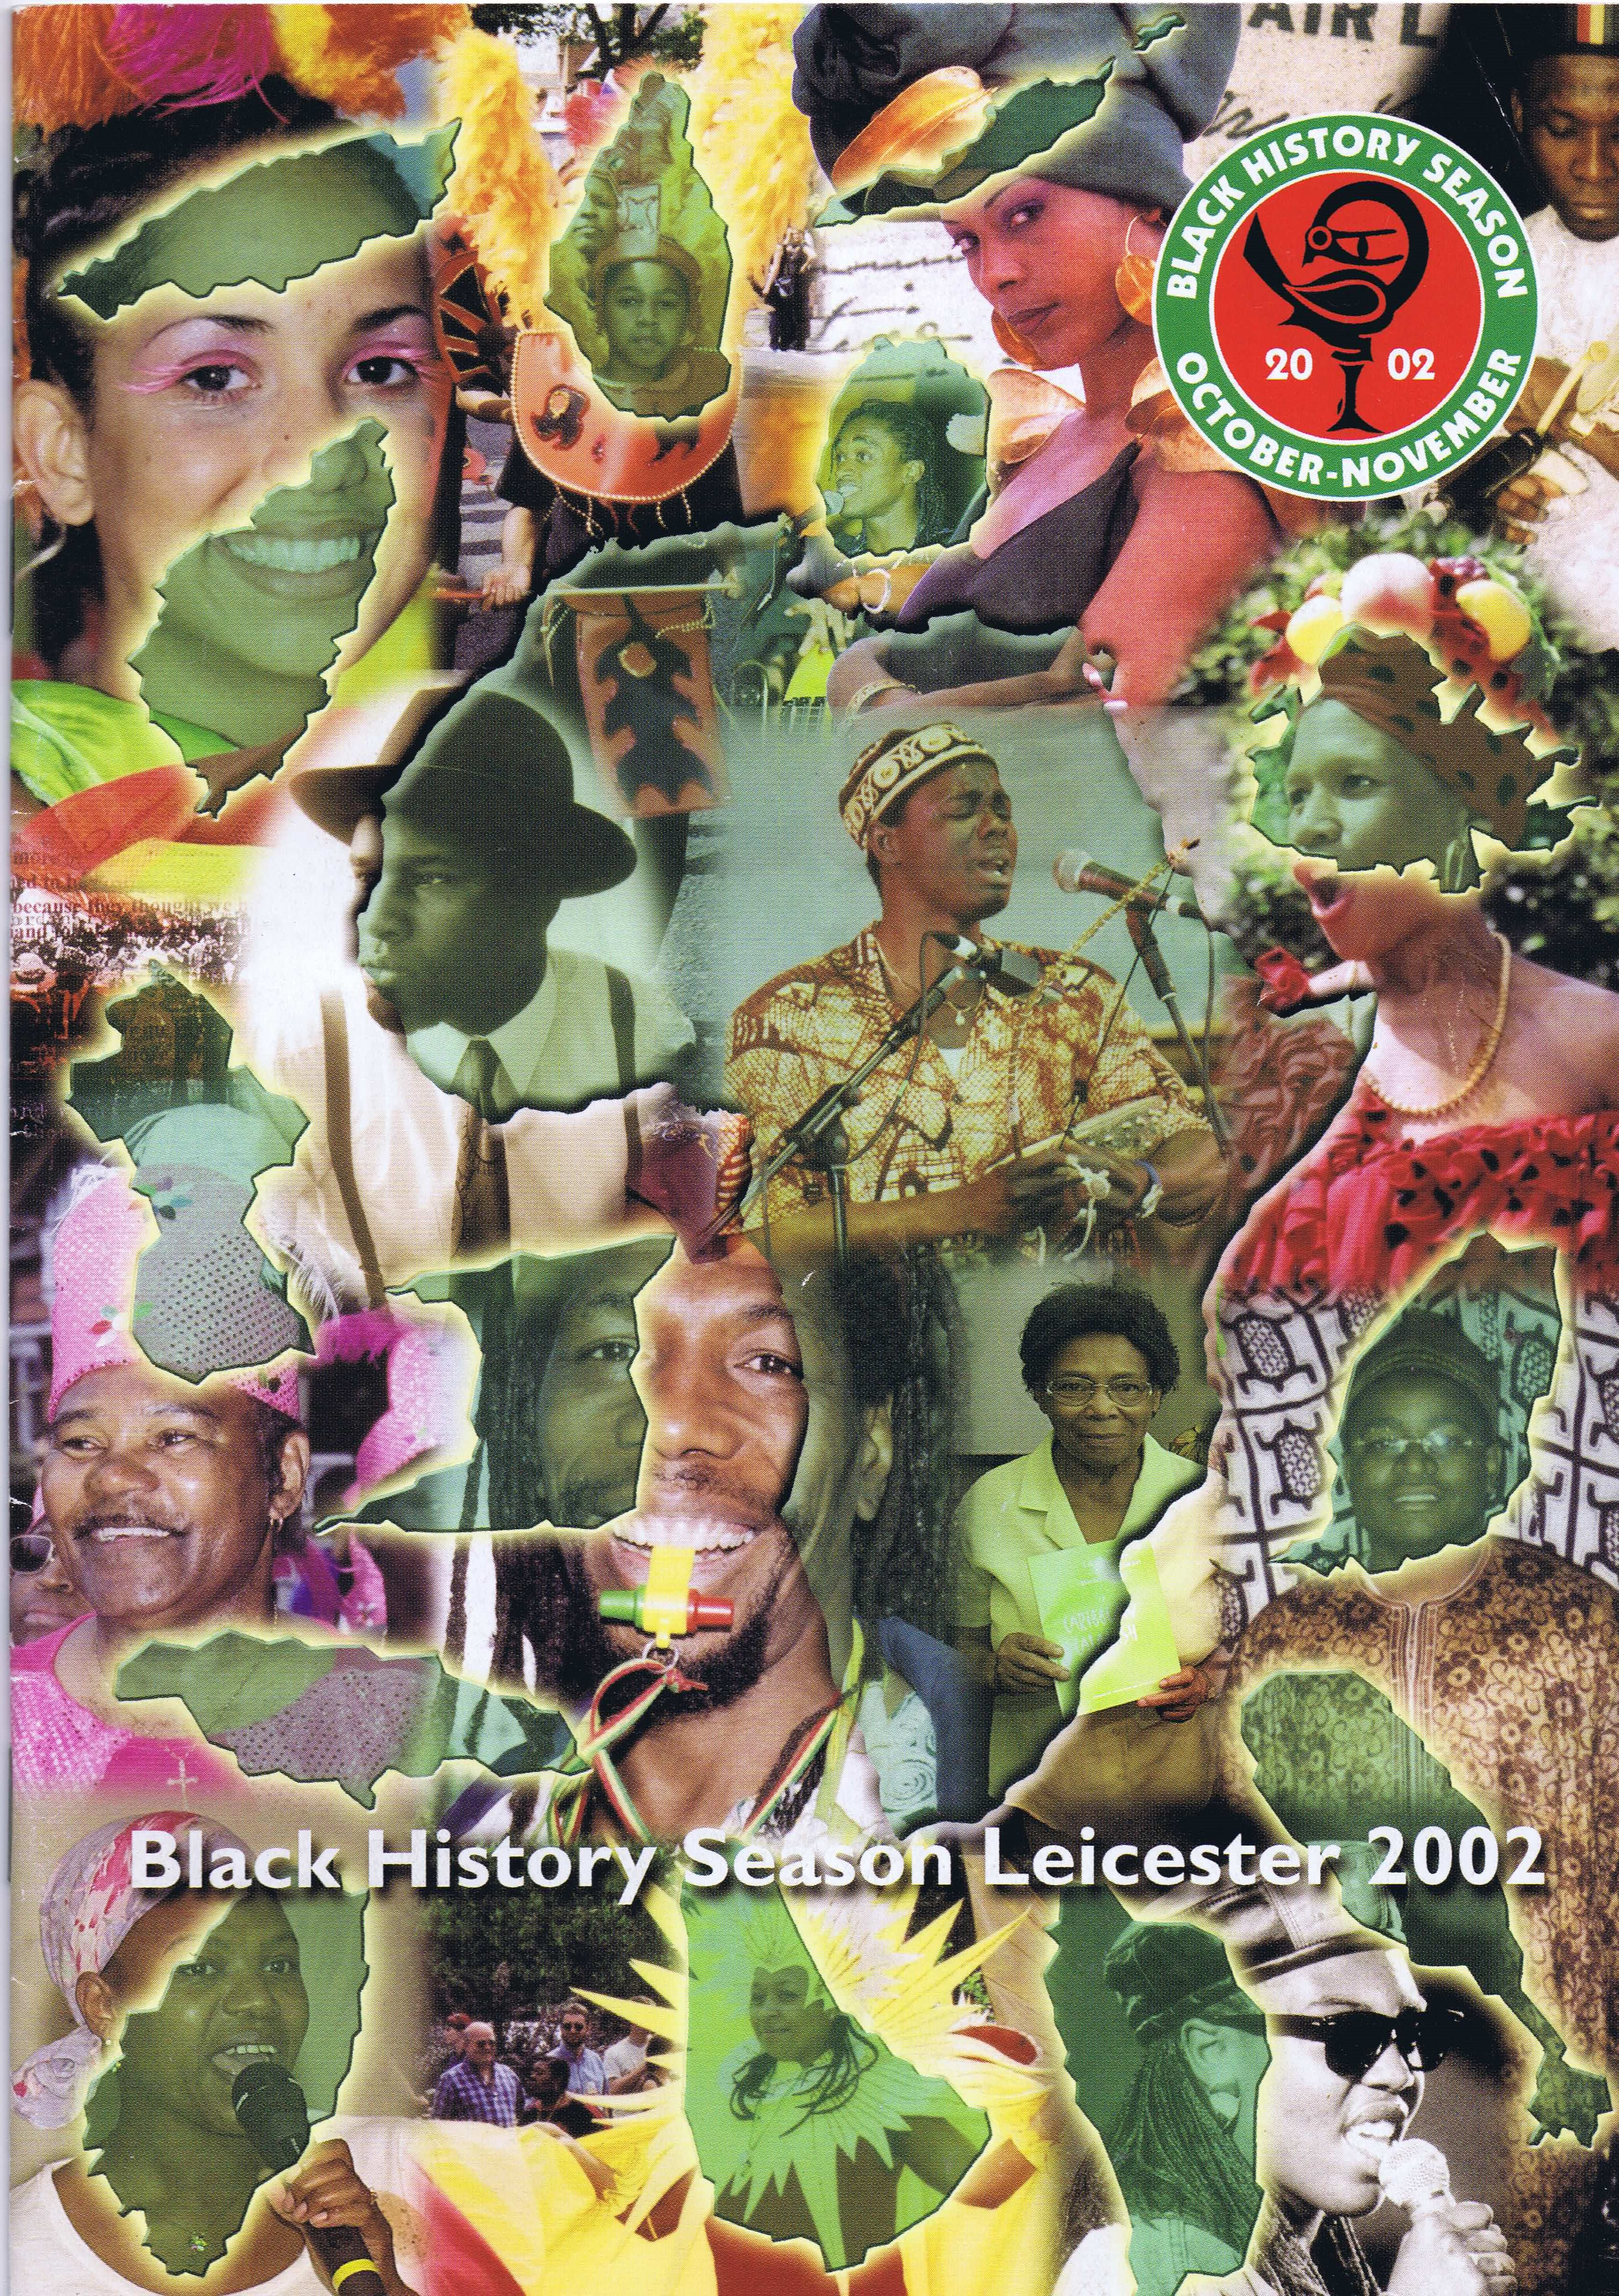 BHM Brochure 2002 — Page Banner